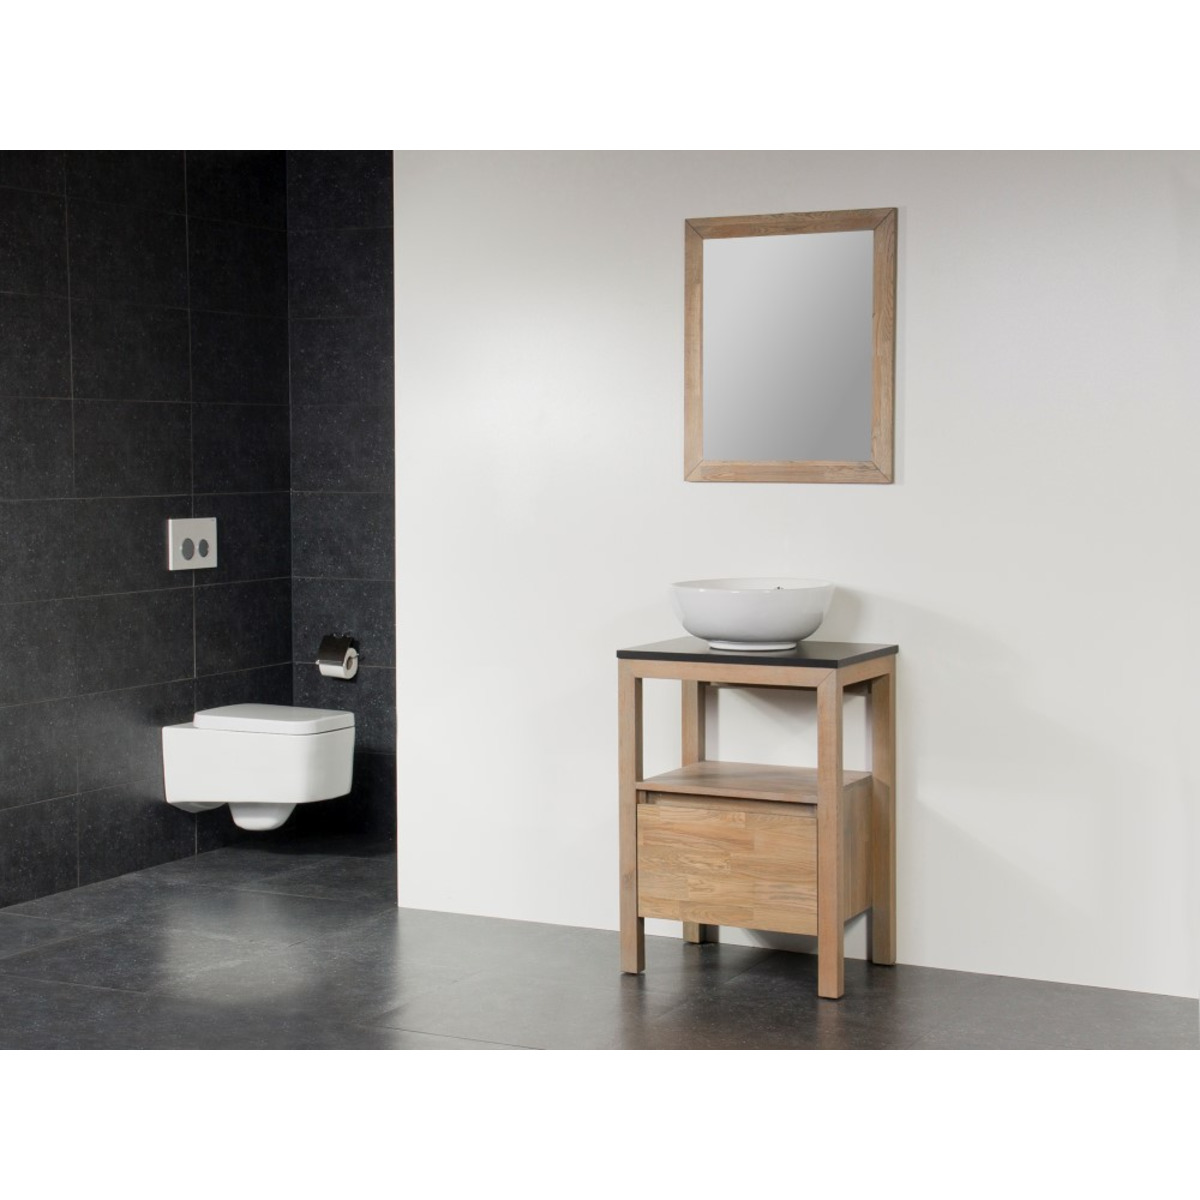 saniclass natural wood meuble salle de bain avec miroir 60cm grey wash avec vasque poser blanc. Black Bedroom Furniture Sets. Home Design Ideas